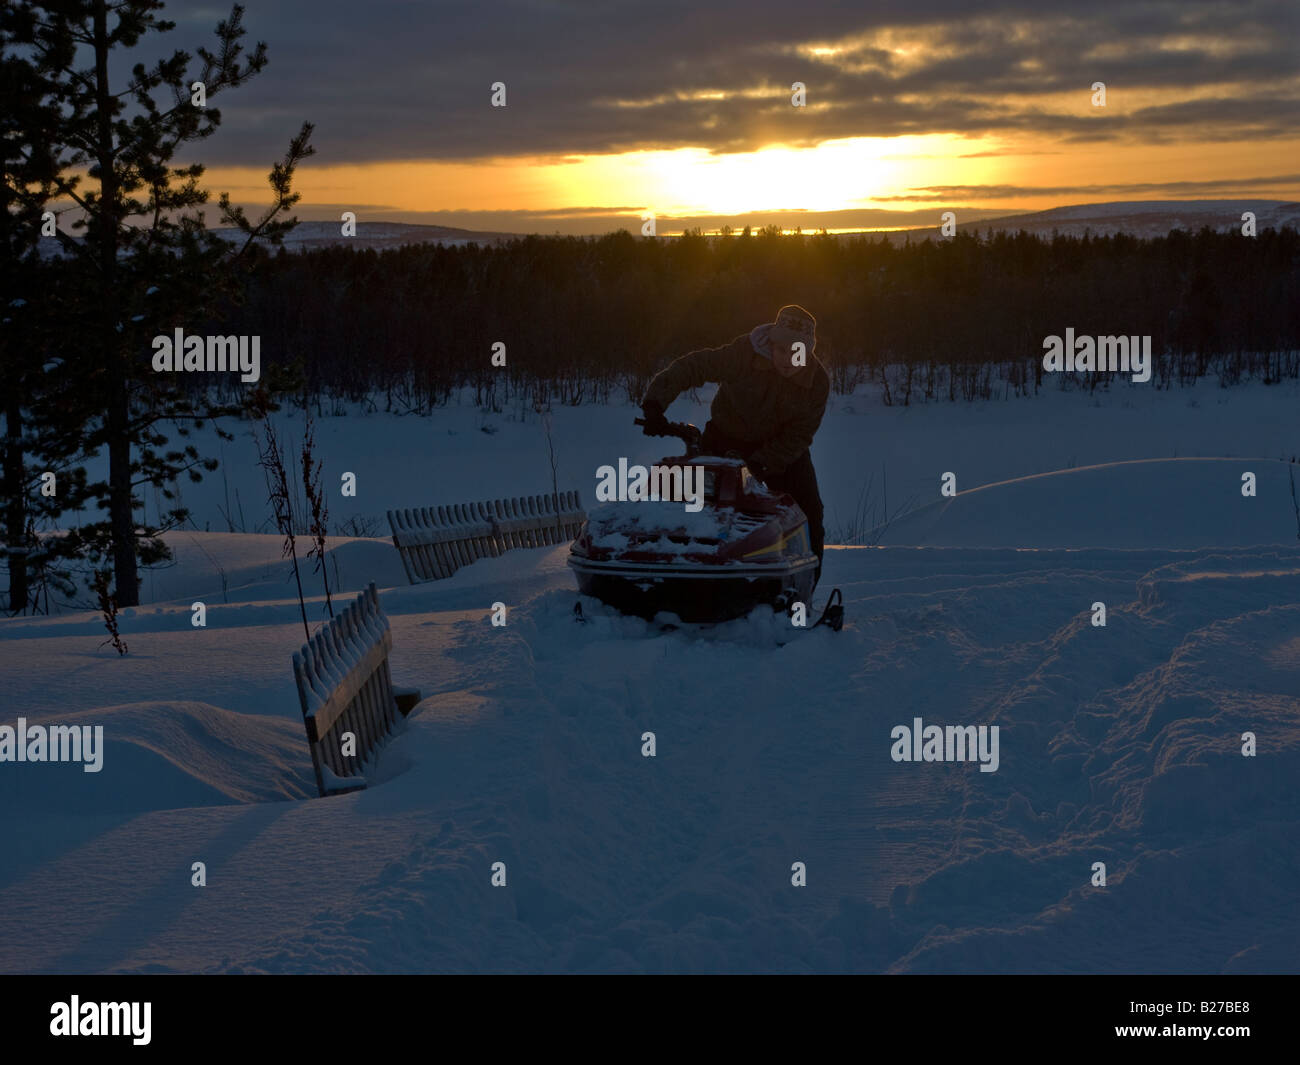 Snow mobile returns from trip with the sun setting behind the fells on the swedish side of Tornio river - Stock Image